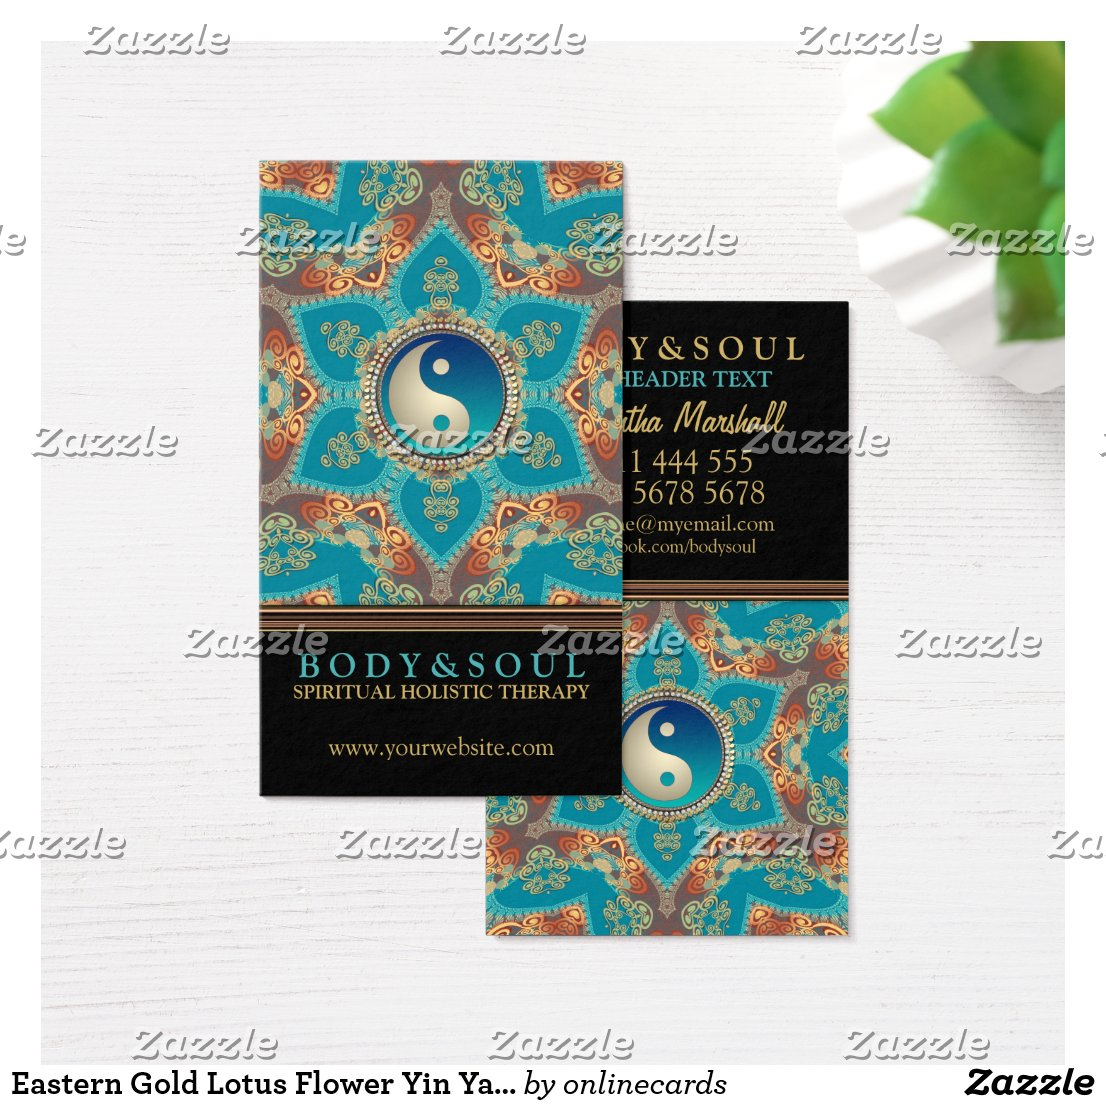 Eastern Gold Lotus Flower Yin Yang Business Cards